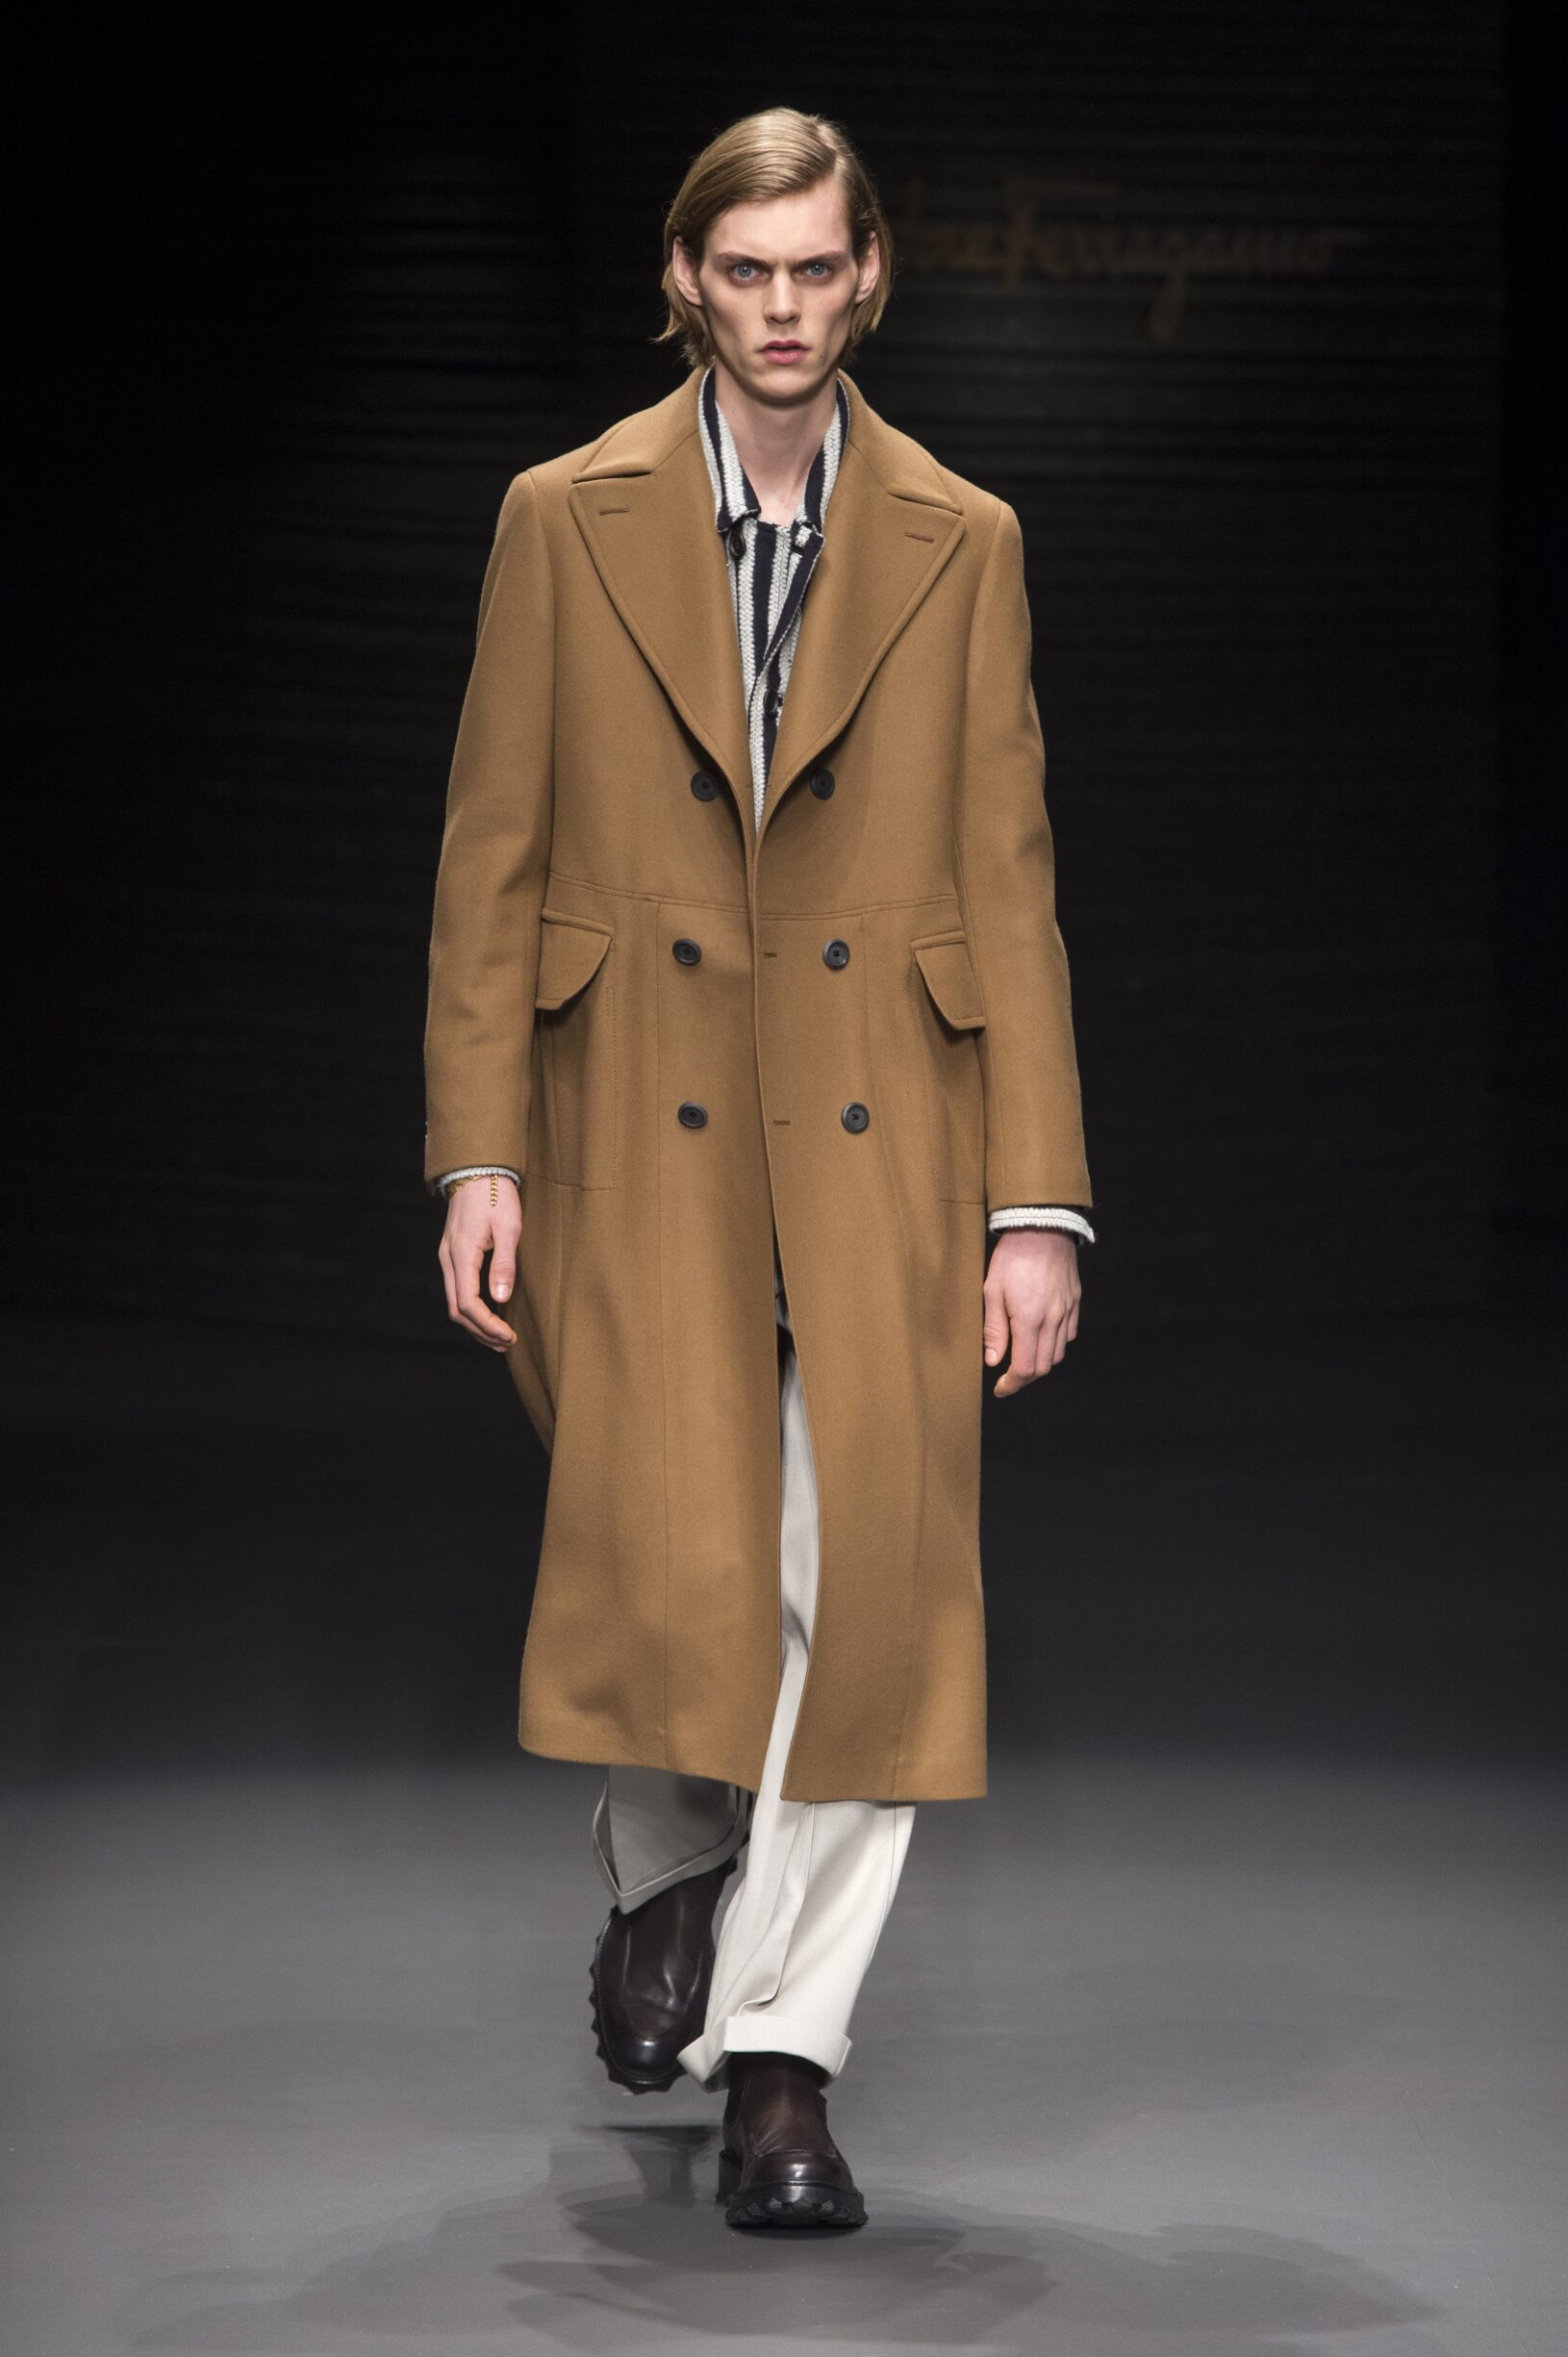 Salvatore Ferragamo Fall Winter 2017 Mens Collection Milan Fashion Week